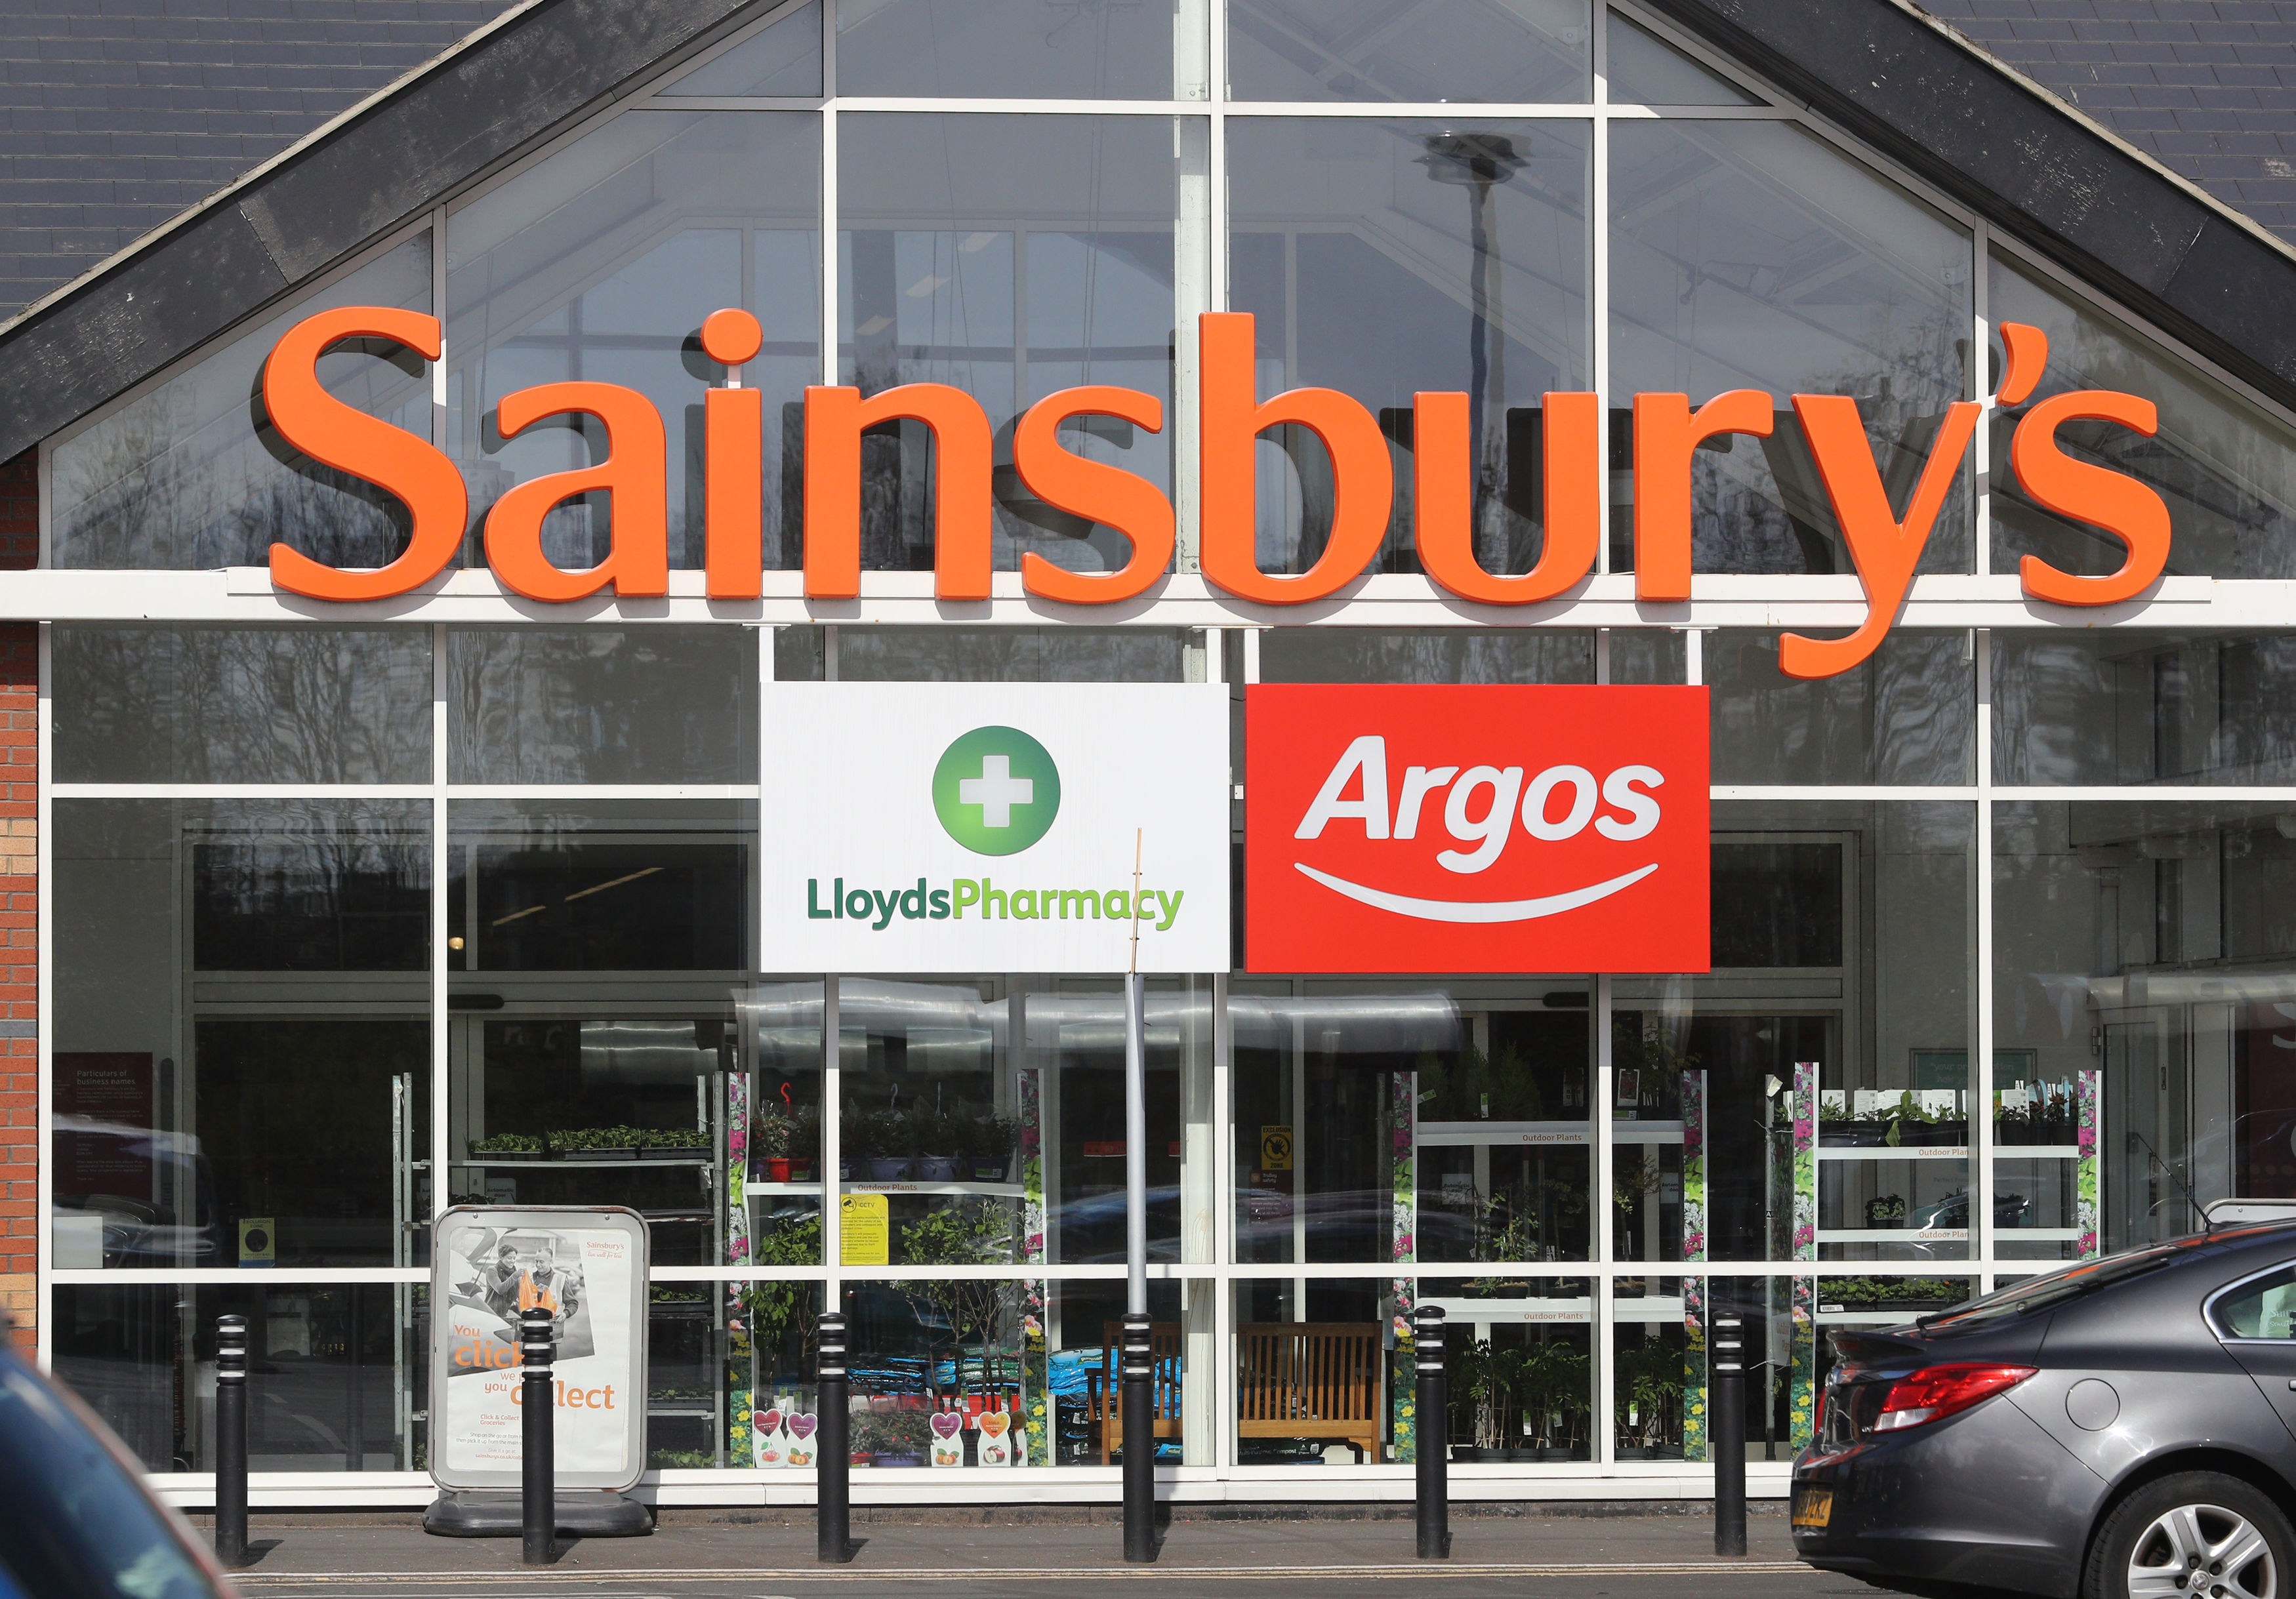 General view of the entrance to a Sainsbury's supermarket, incorporating a Lloyds Pharmacy and an Argos store, in Whitley Bay, North Tyneside.